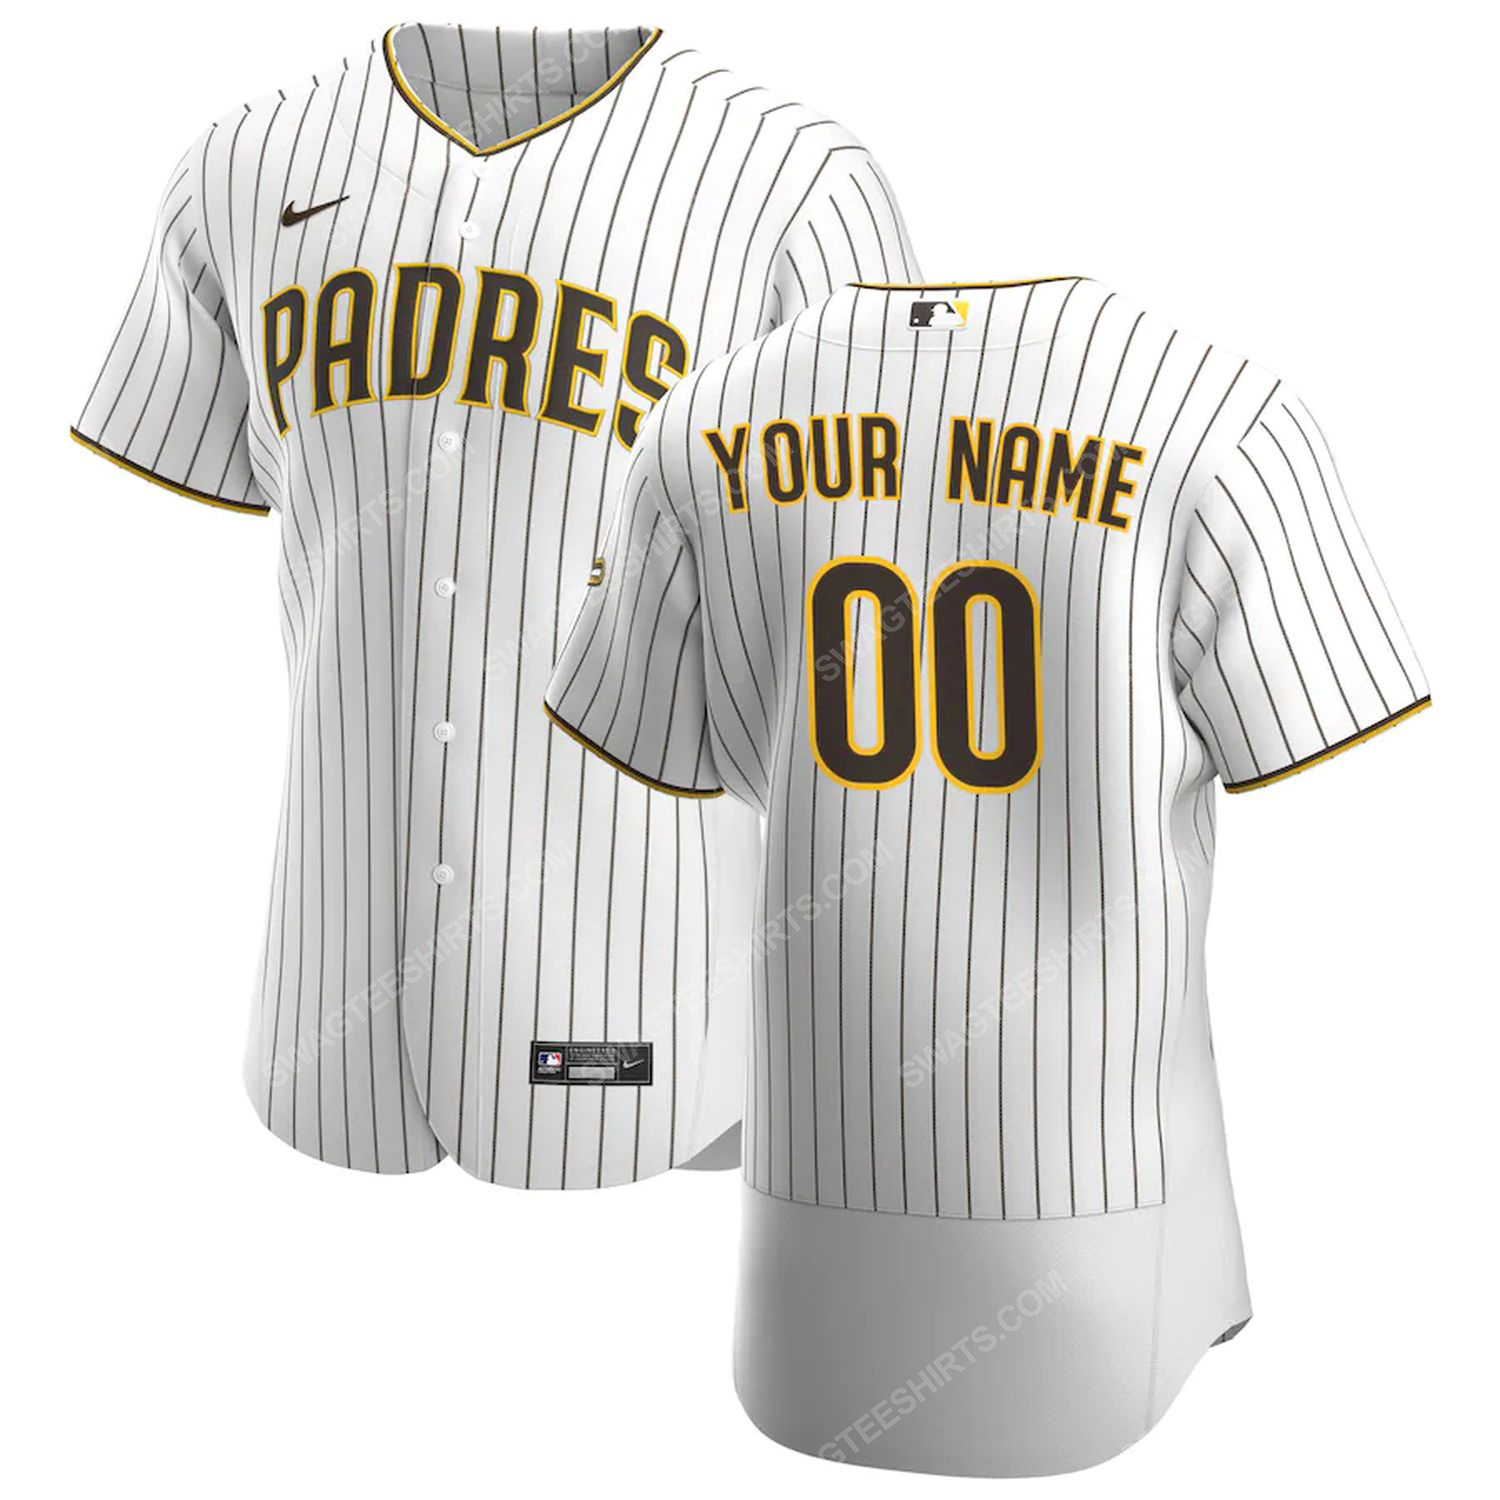 Personalized mlb san diego padres baseball jersey-white